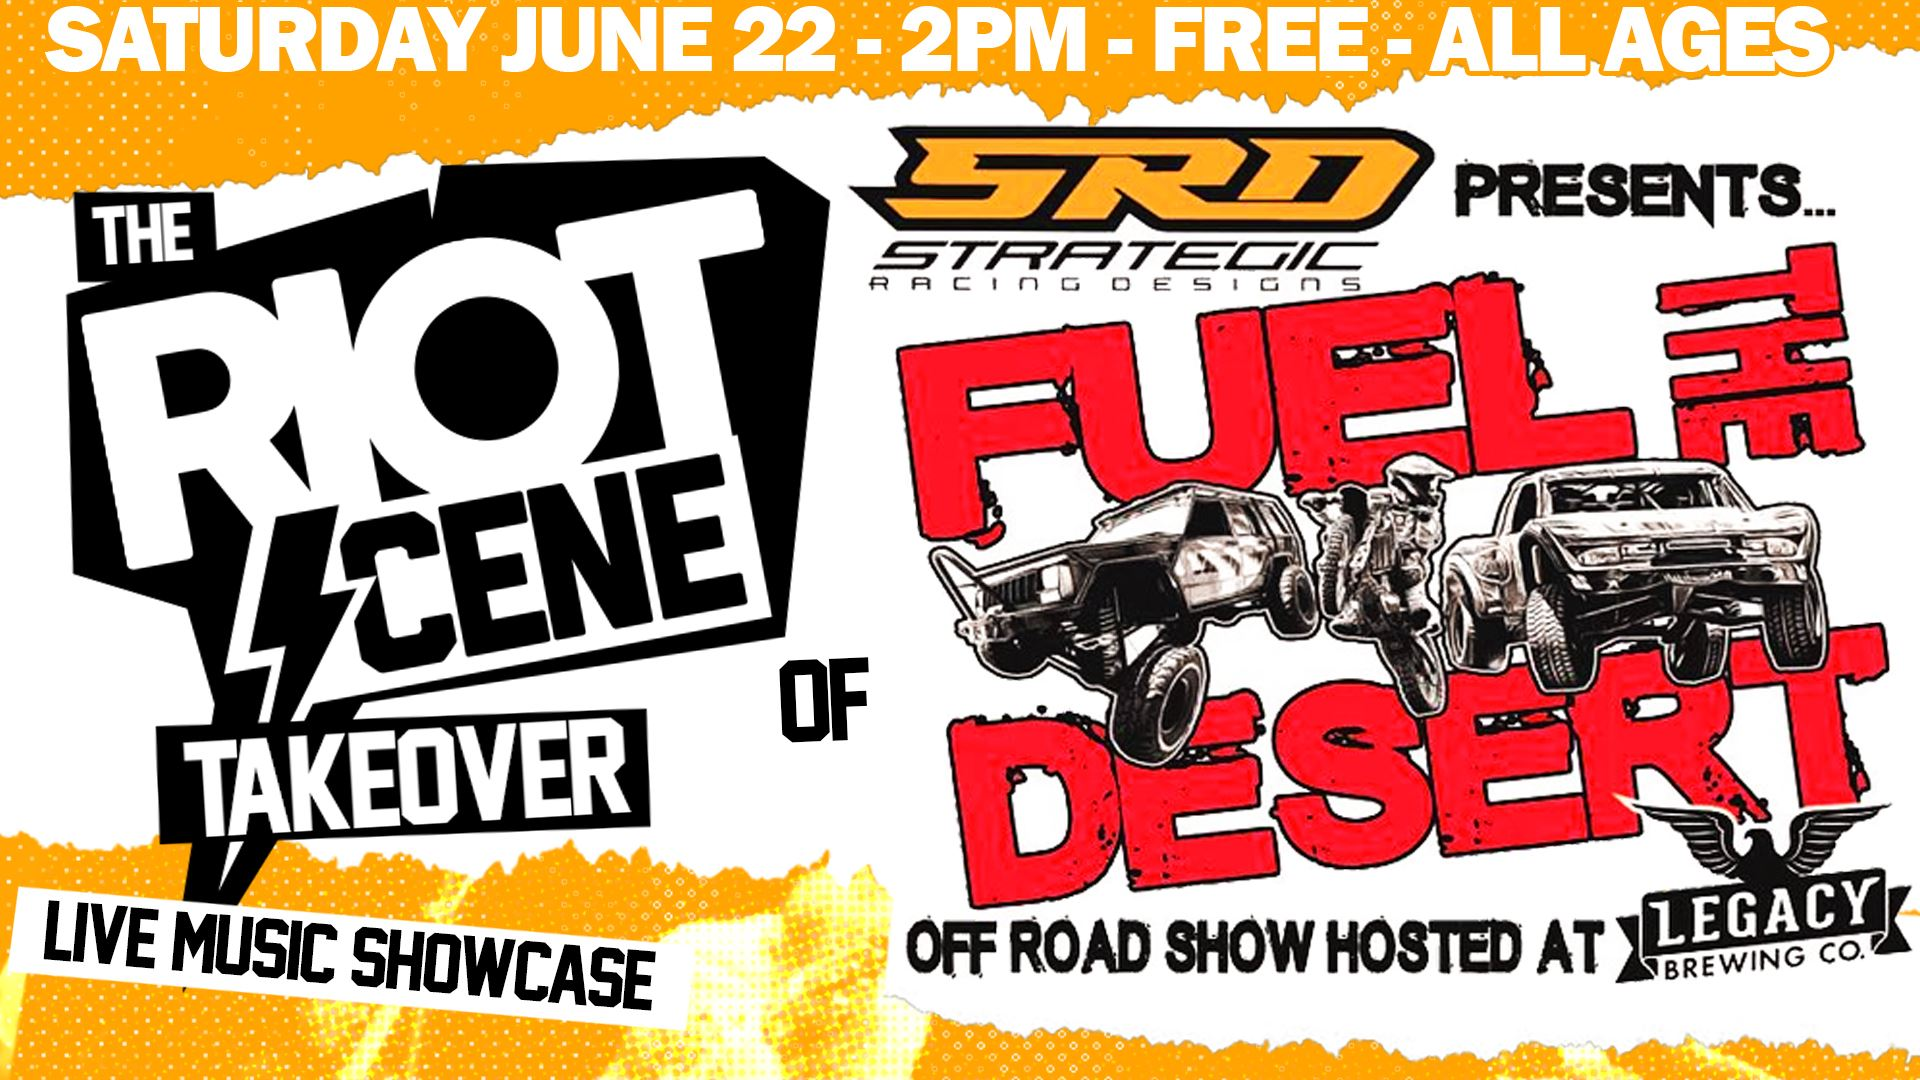 2019-riot-scene-fuel-the-desert-flyer.jpg